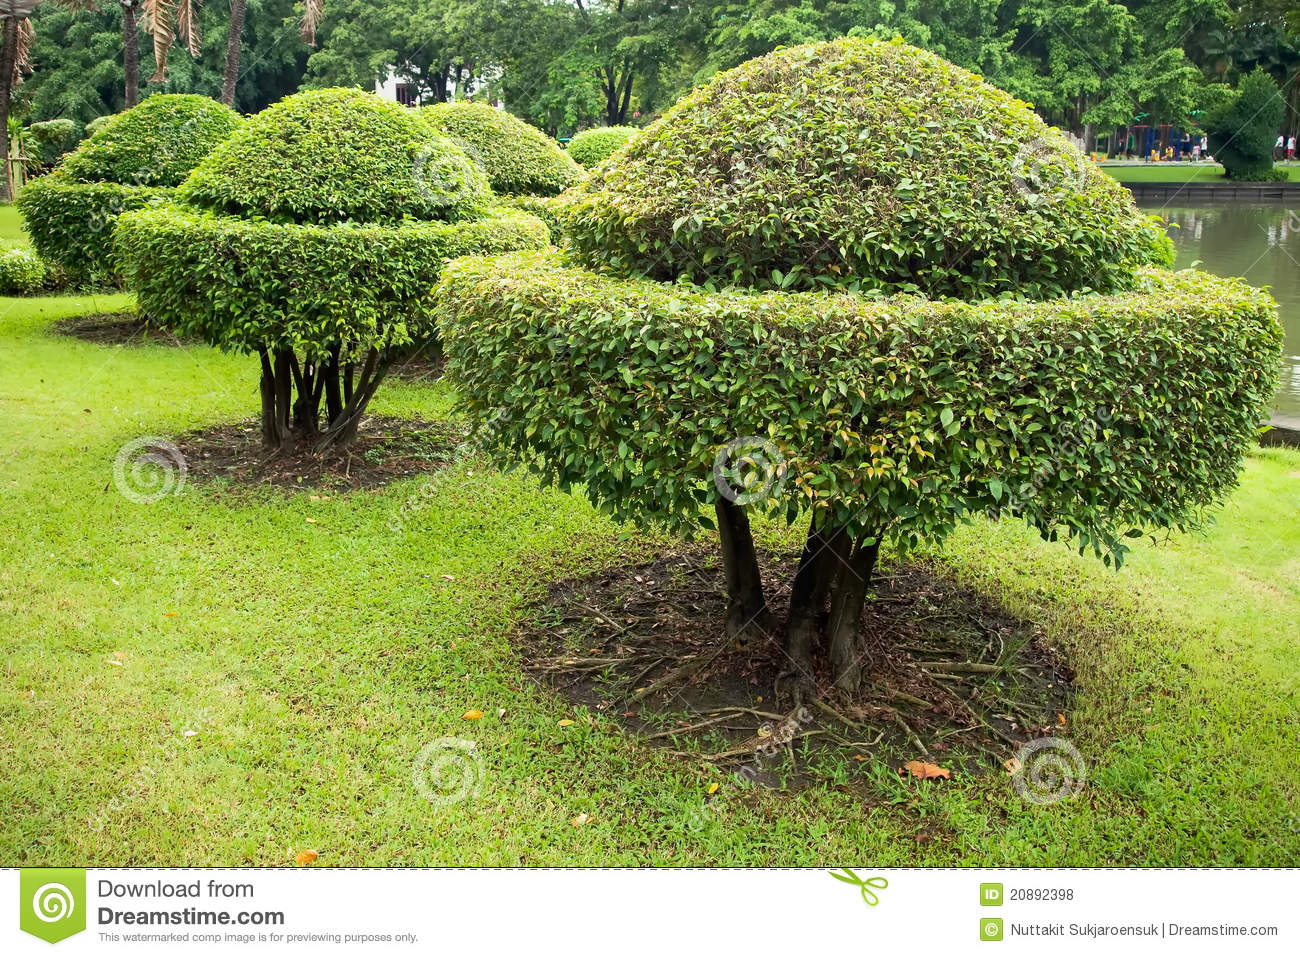 ... Is A Beautiful Shape Royalty Free Stock Photos - Image: 20892398: dreamstime.com/royalty-free-stock-photos-tree-trimming-beautiful...